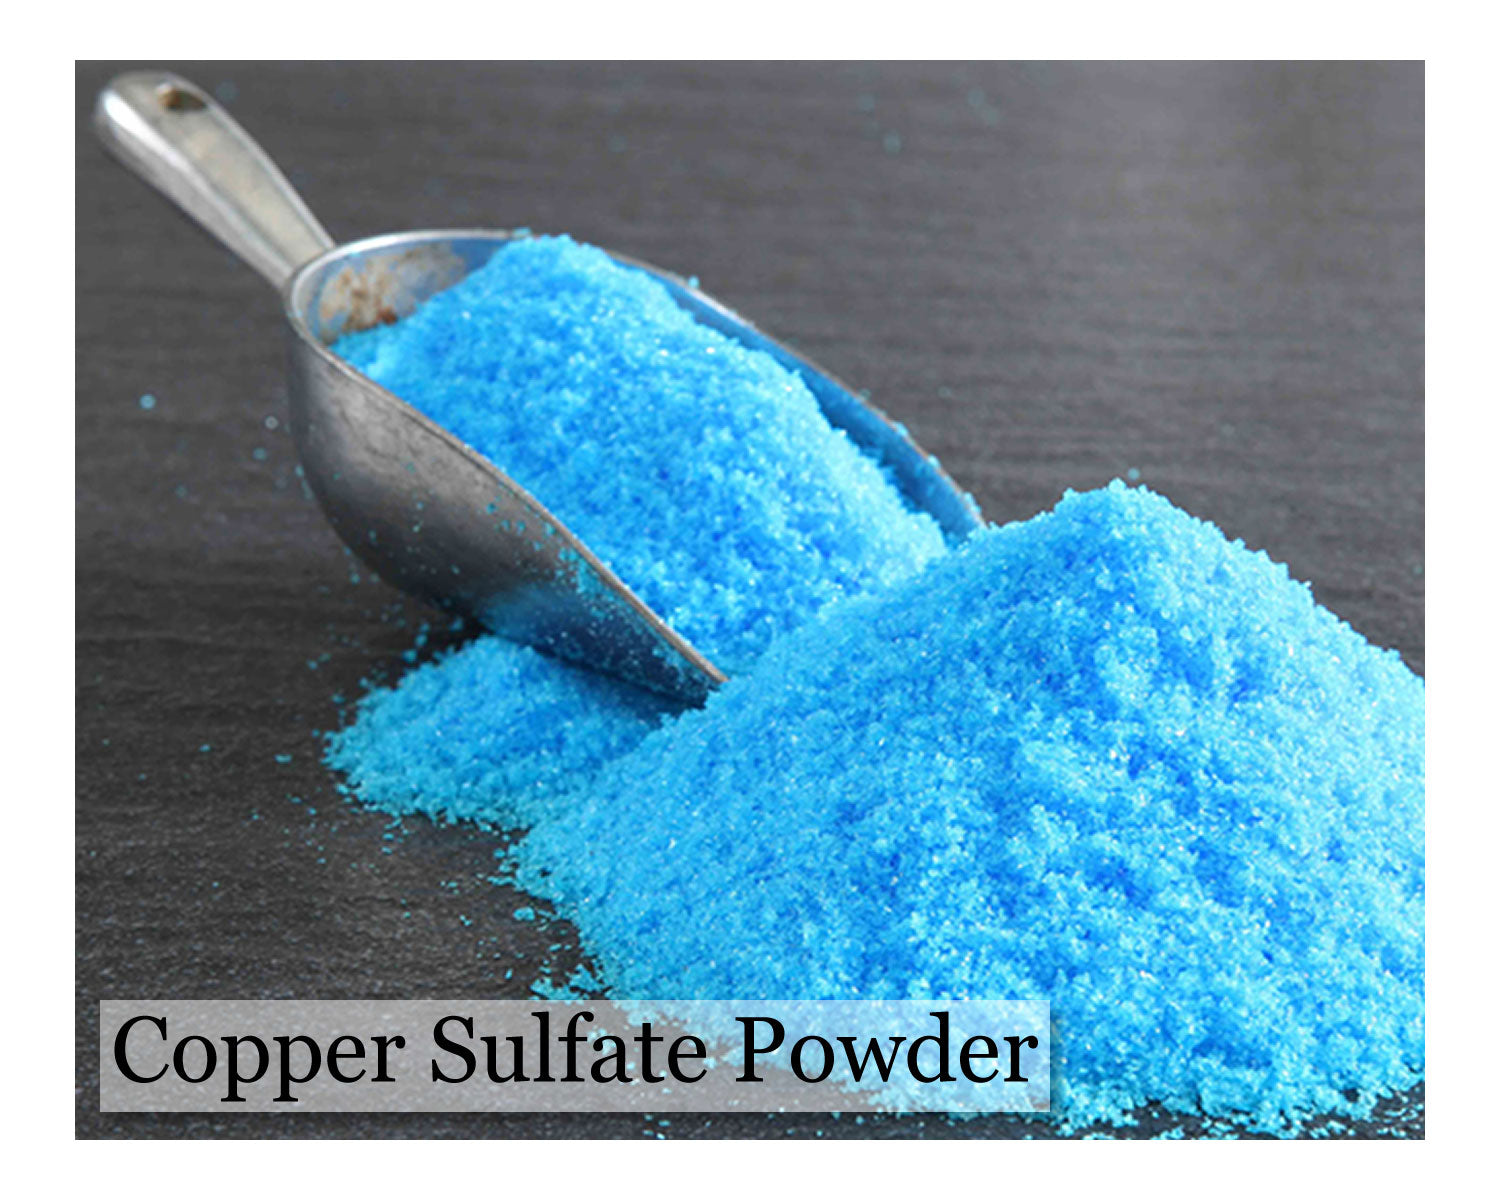 Copper Sulfate Powder - 8 oz